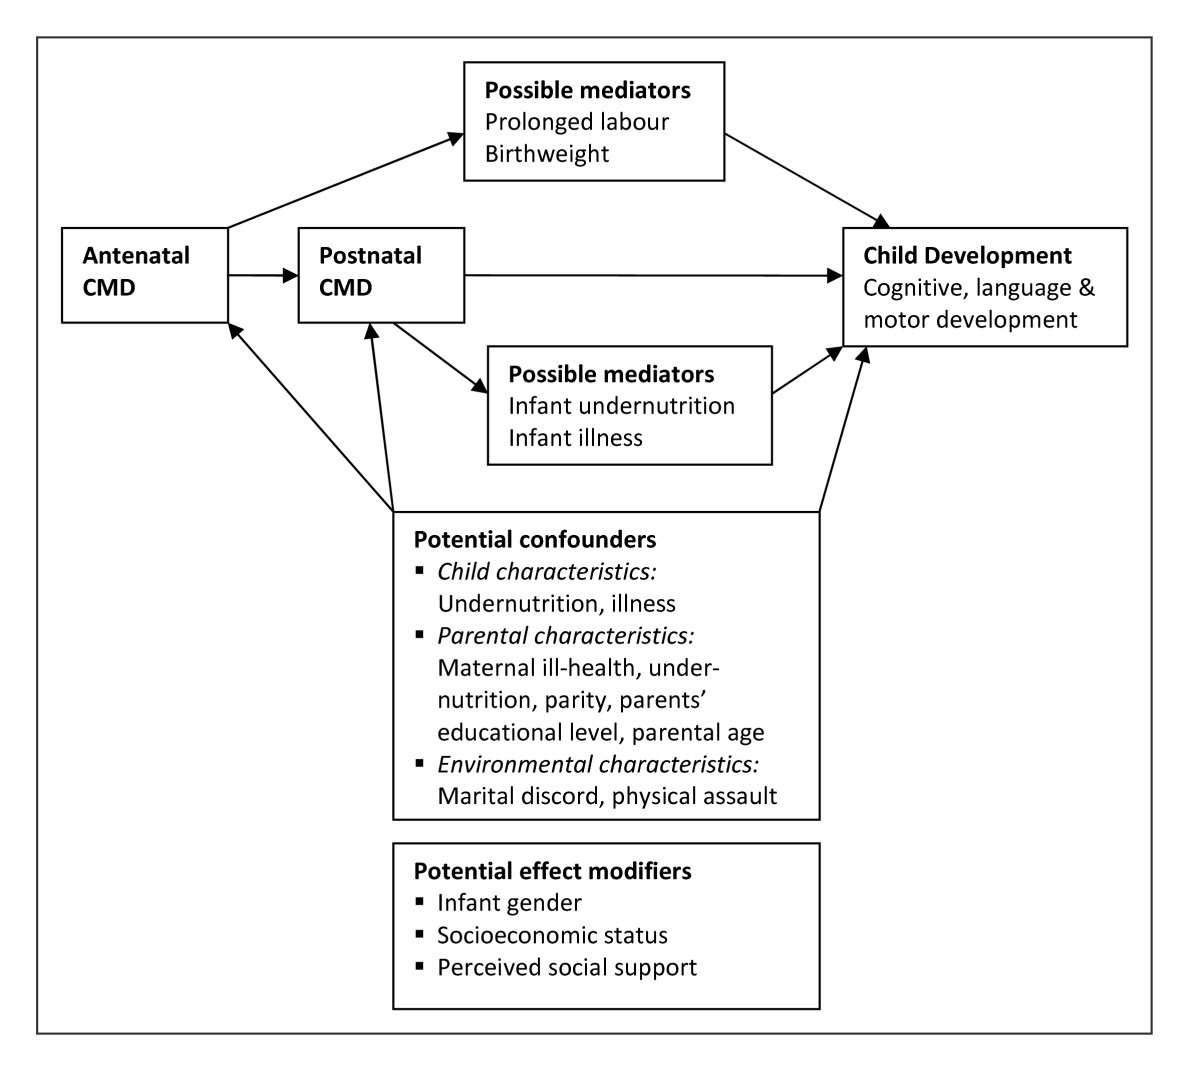 Maternal Common Mental Disorders And Infant Development In Ethiopia 2010 Town Country 3 8 Engine Diagram Potential Confounders Mediators Effect Modifiers